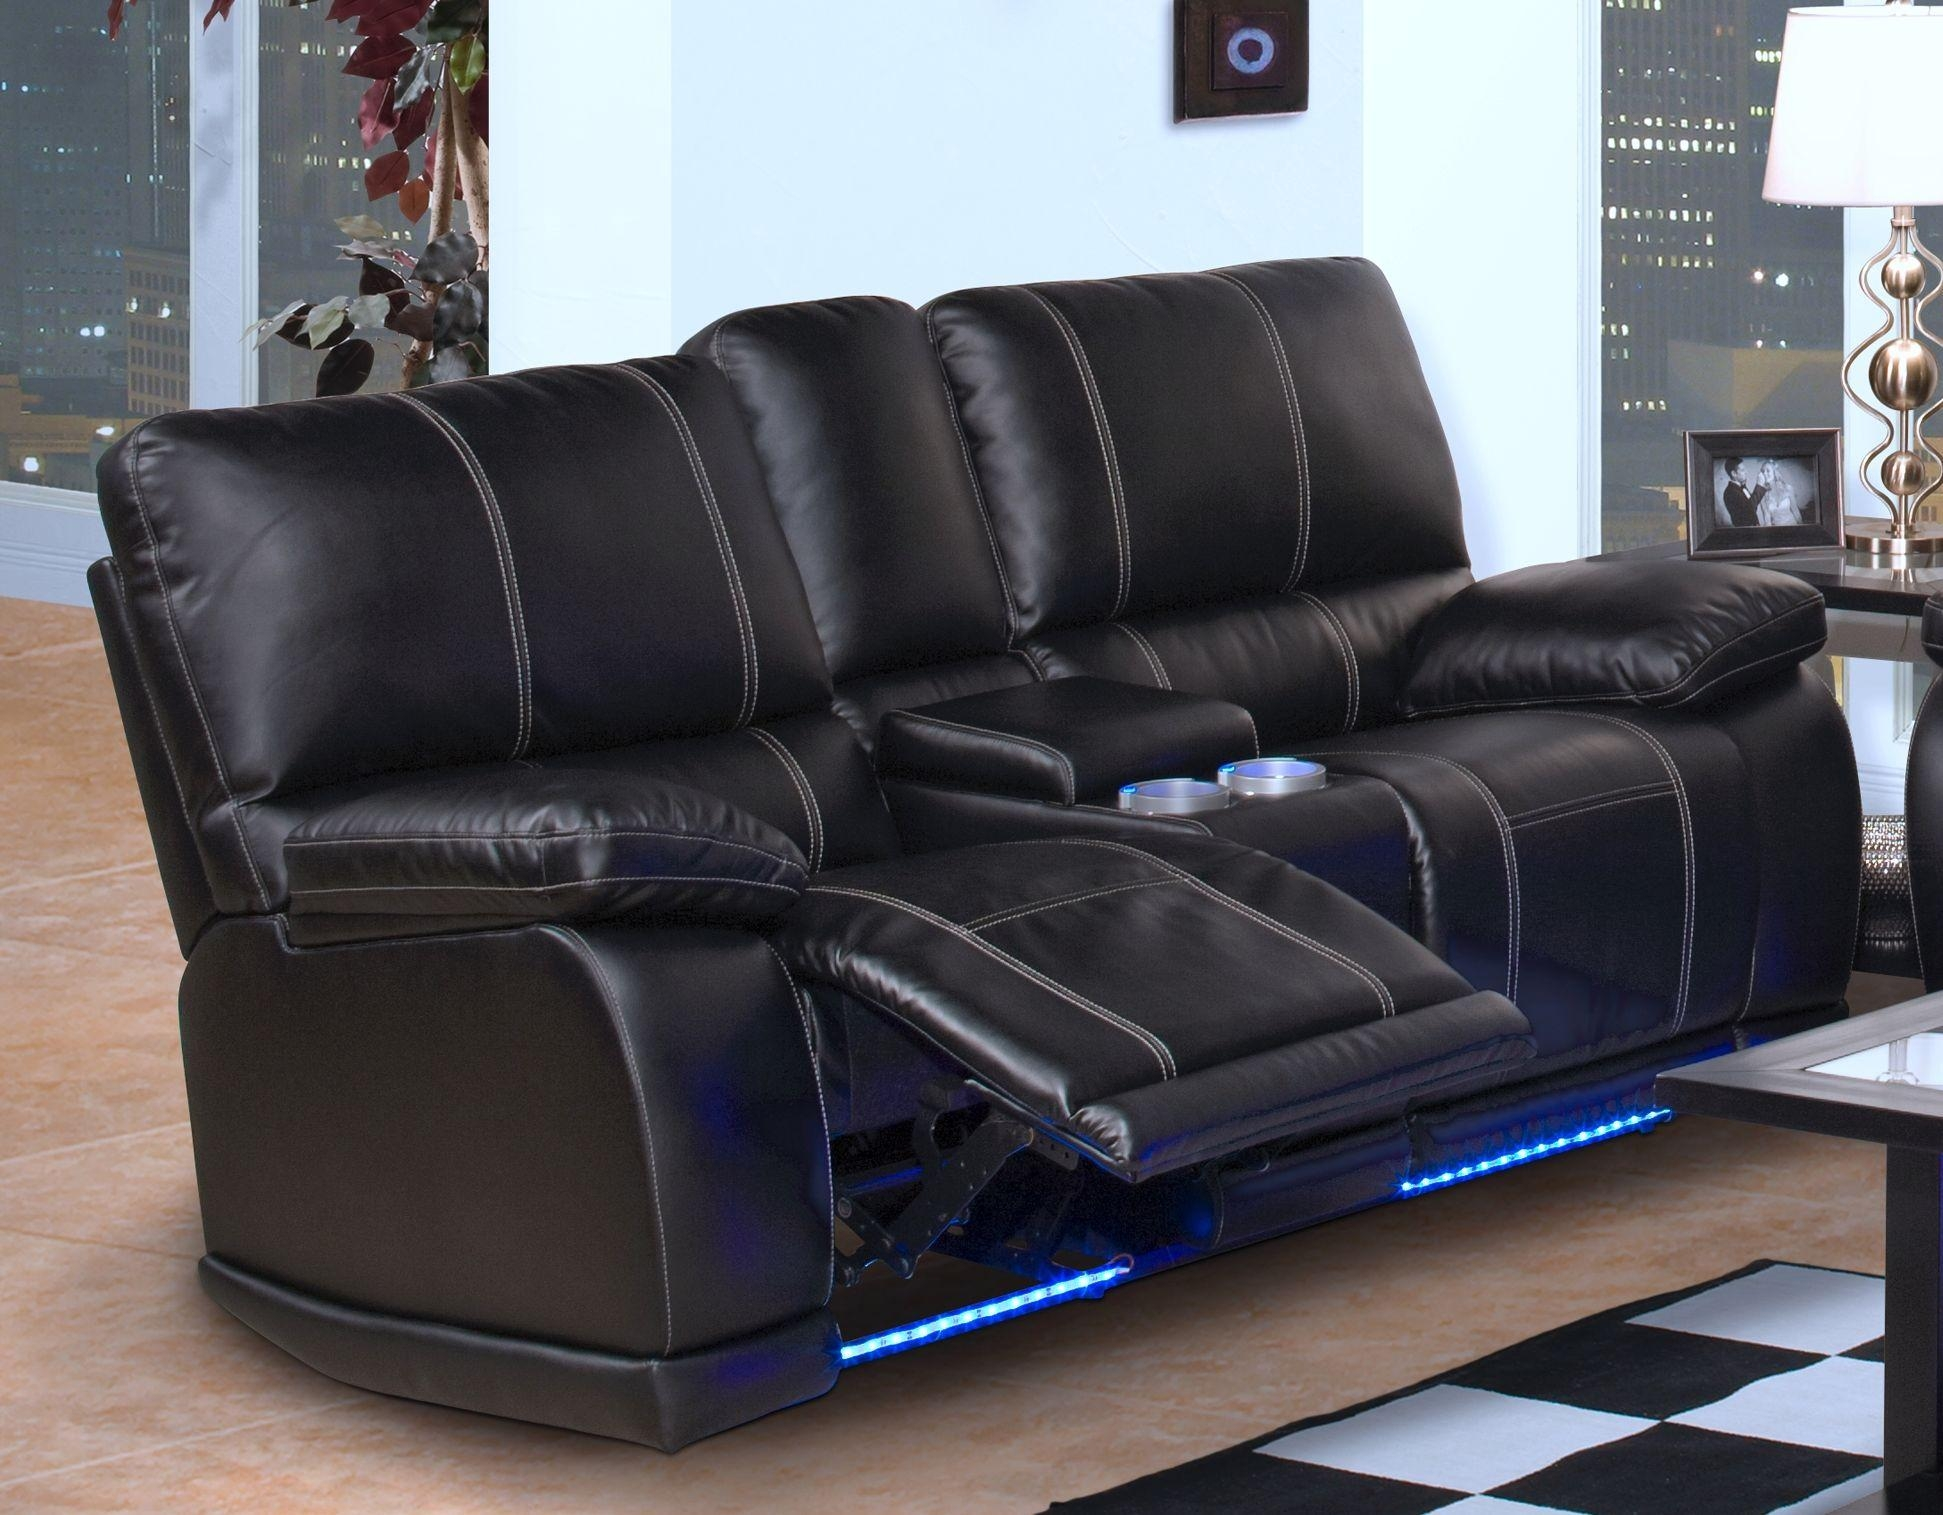 Furniture: Find Your Maximum Comfort With Reclining Couches For Inside Lazy Boy Leather Sectional (Image 6 of 20)